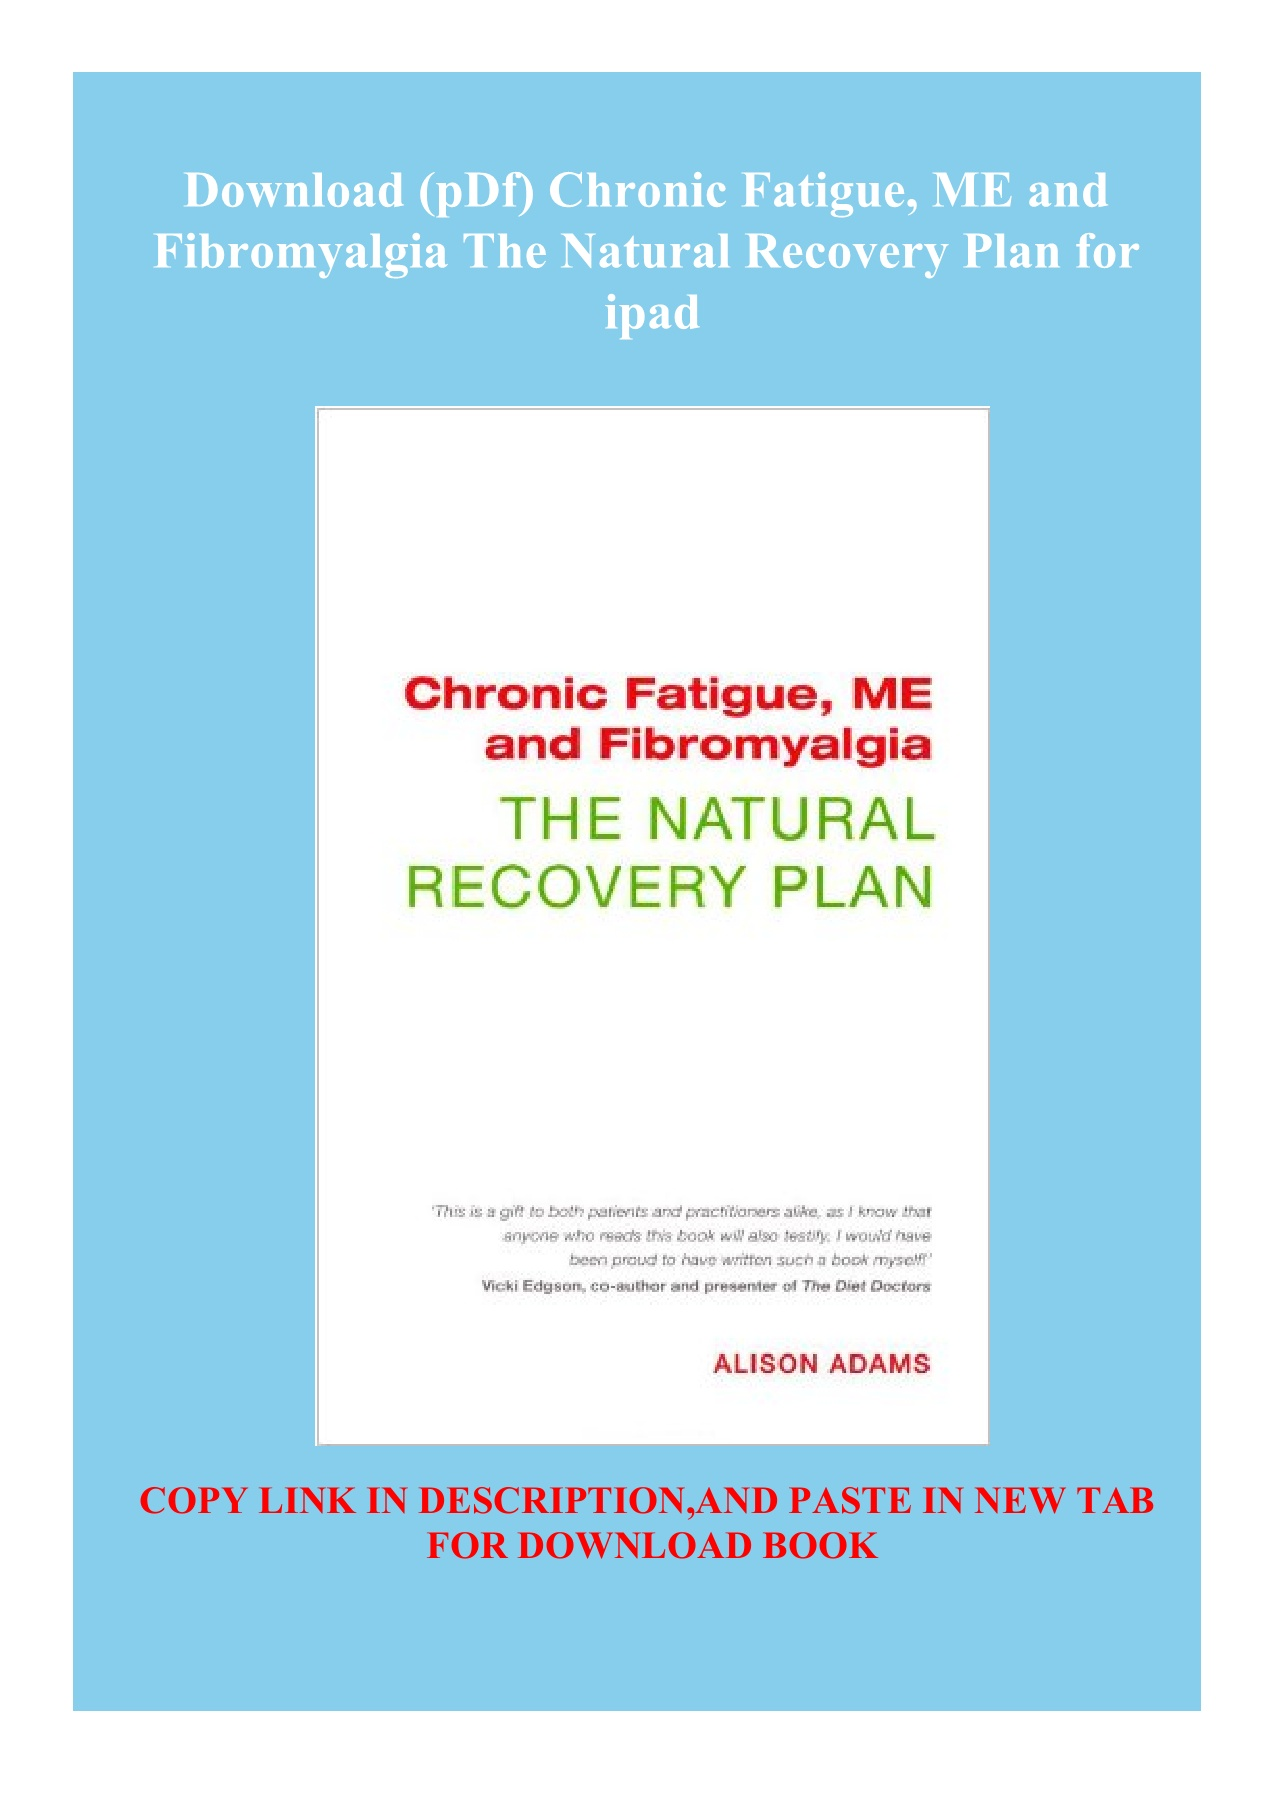 Fibromyalgia Diet Plan Pdf : fibromyalgia, Download, (pDf), Chronic, Fatigue, Fibromyalgia, Natural, Recovery